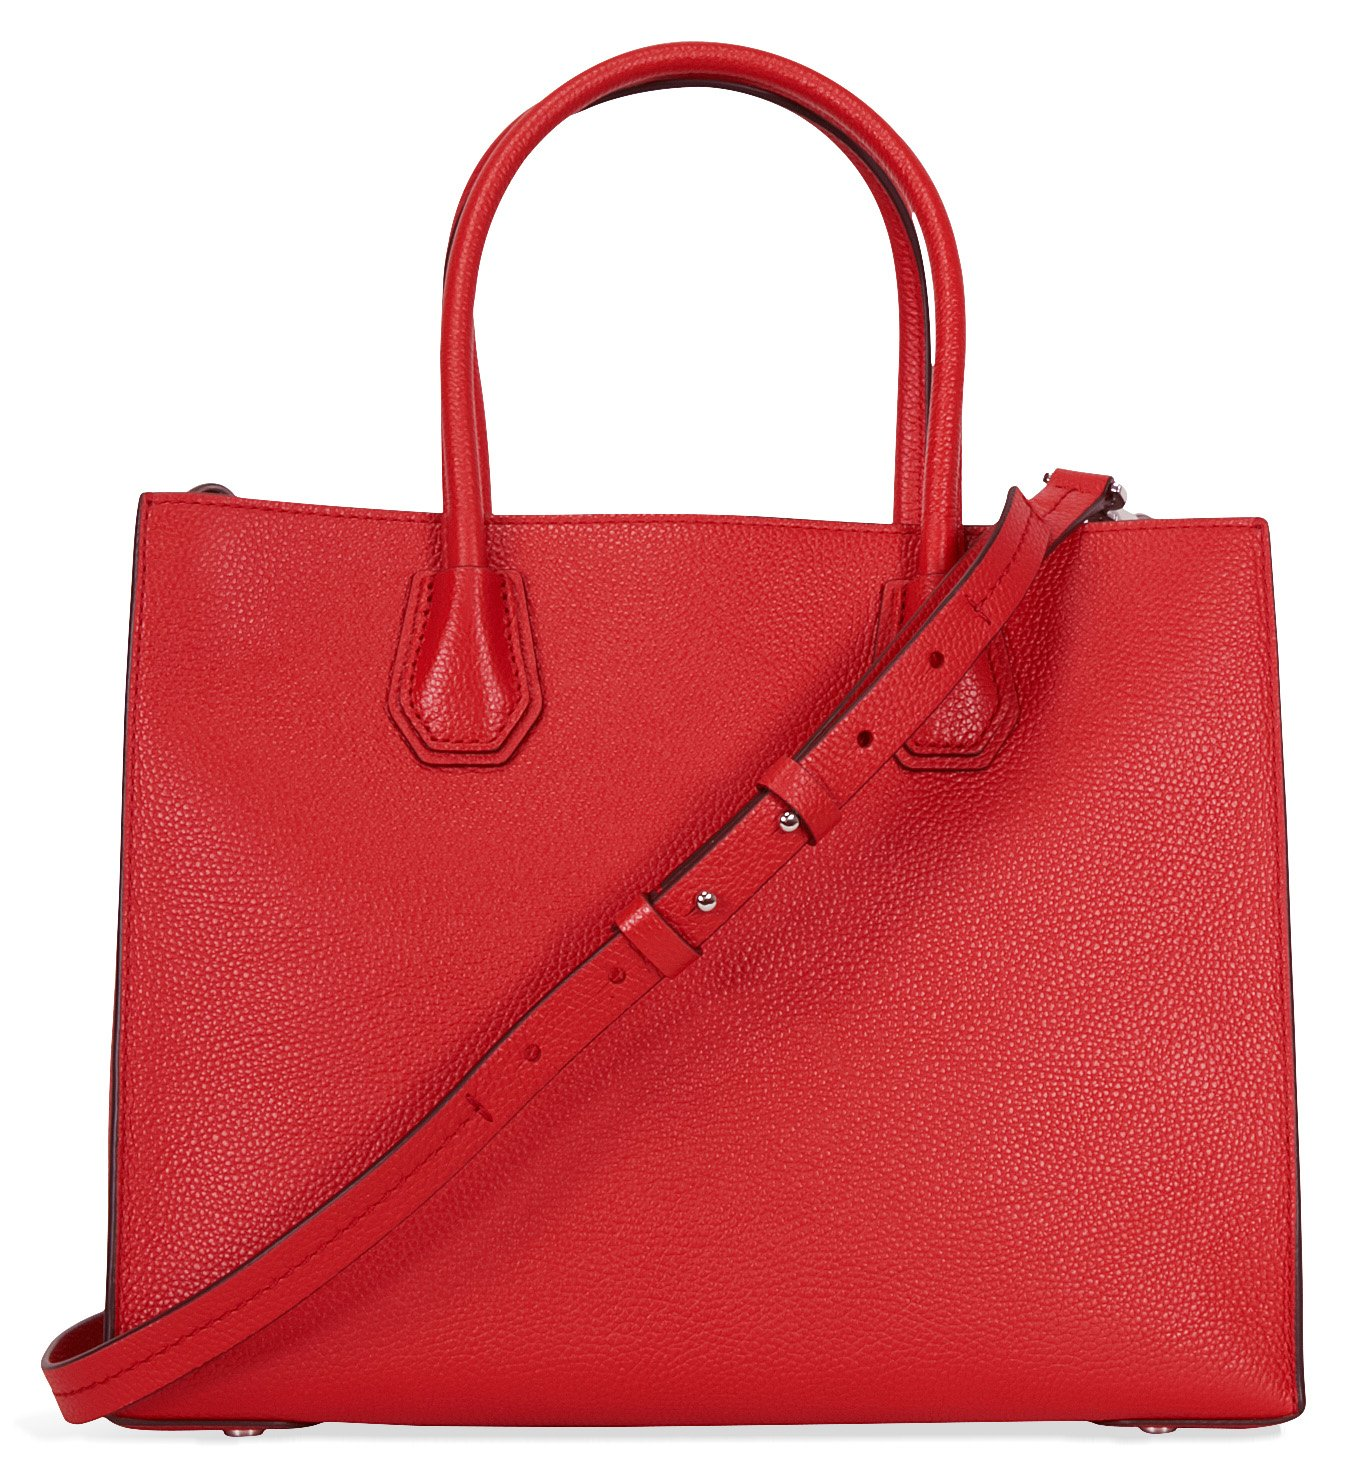 MICHAEL Michael Kors Women's Mercer Tote, Bright Red, One Size